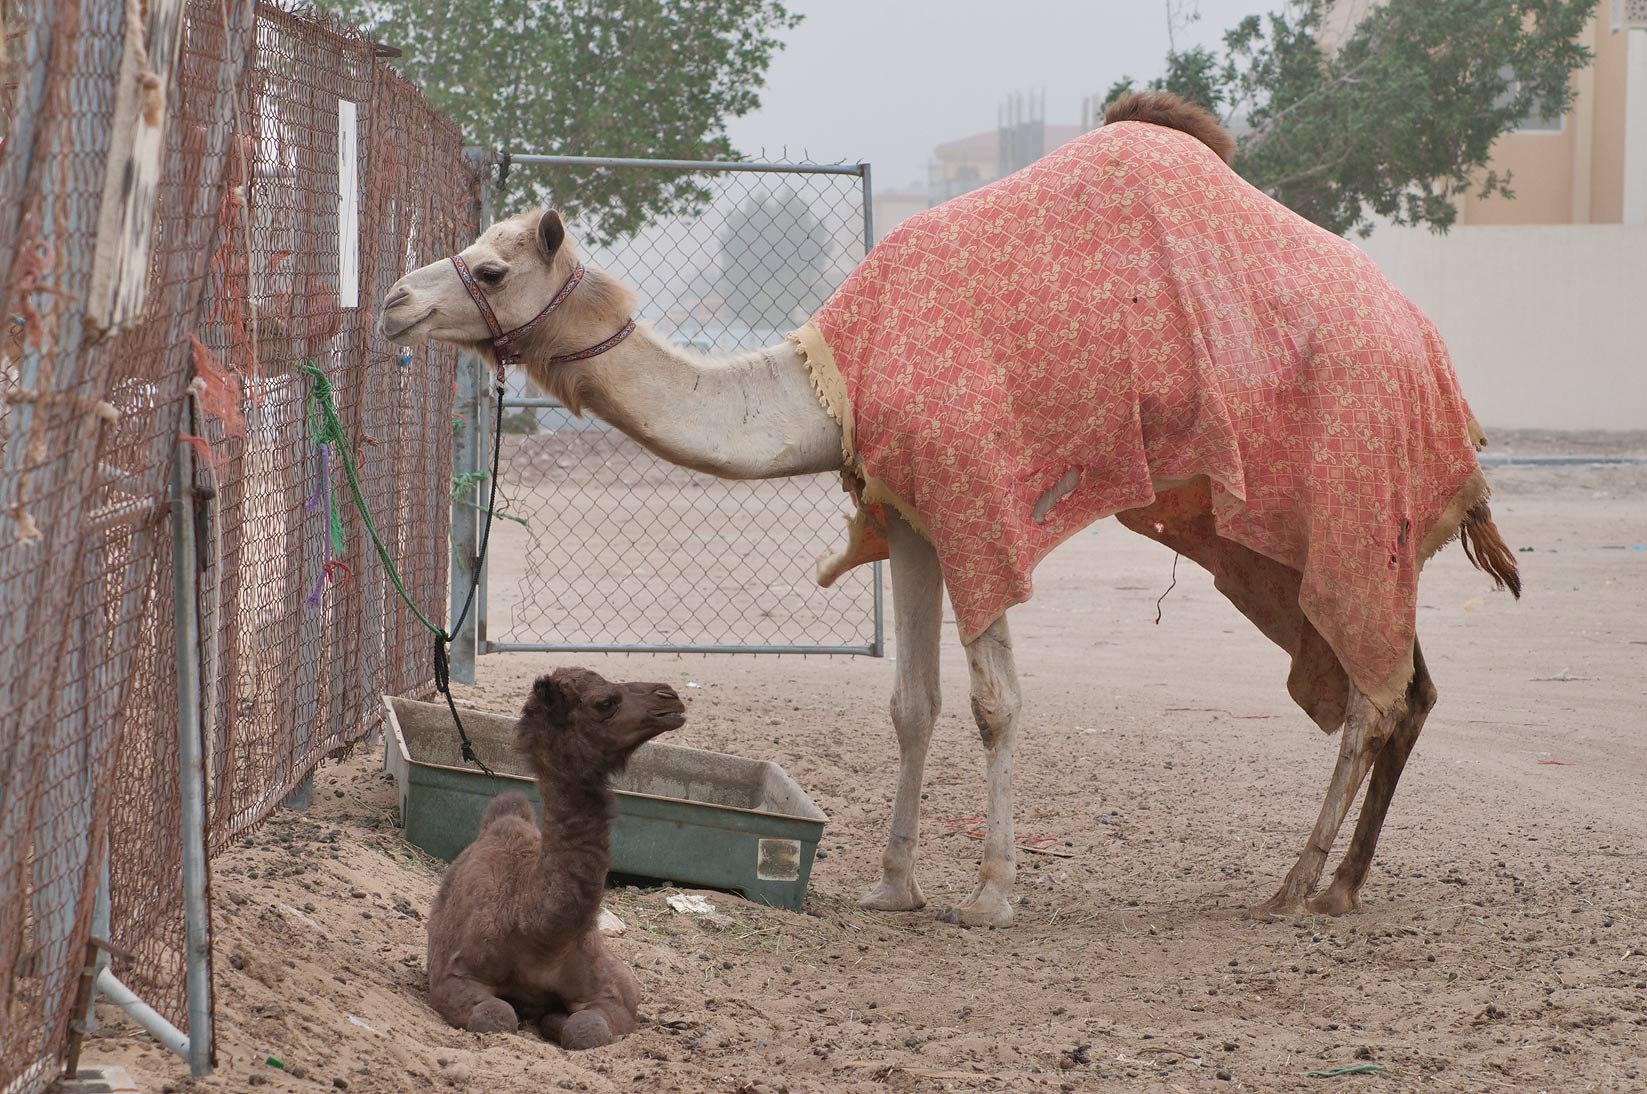 Camel wearing red cover with a calf in Camel Market, Wholesale Markets area. Doha, Qatar